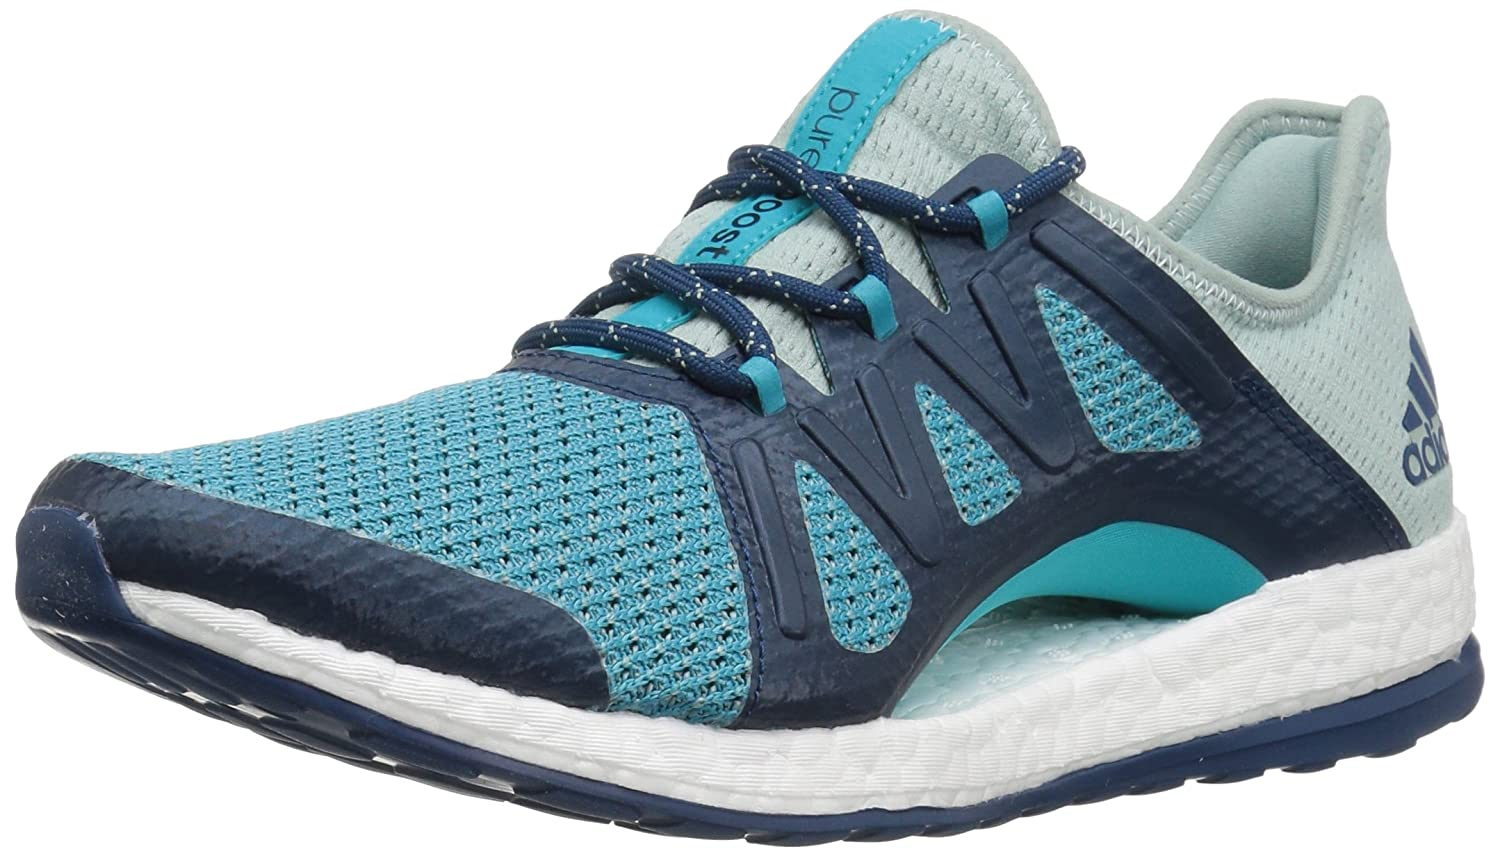 adidas Women's Pureboost Xpose B01NCBG94D 9.5 B(M) US|Tactile Green/Energy Blue/Blue Night